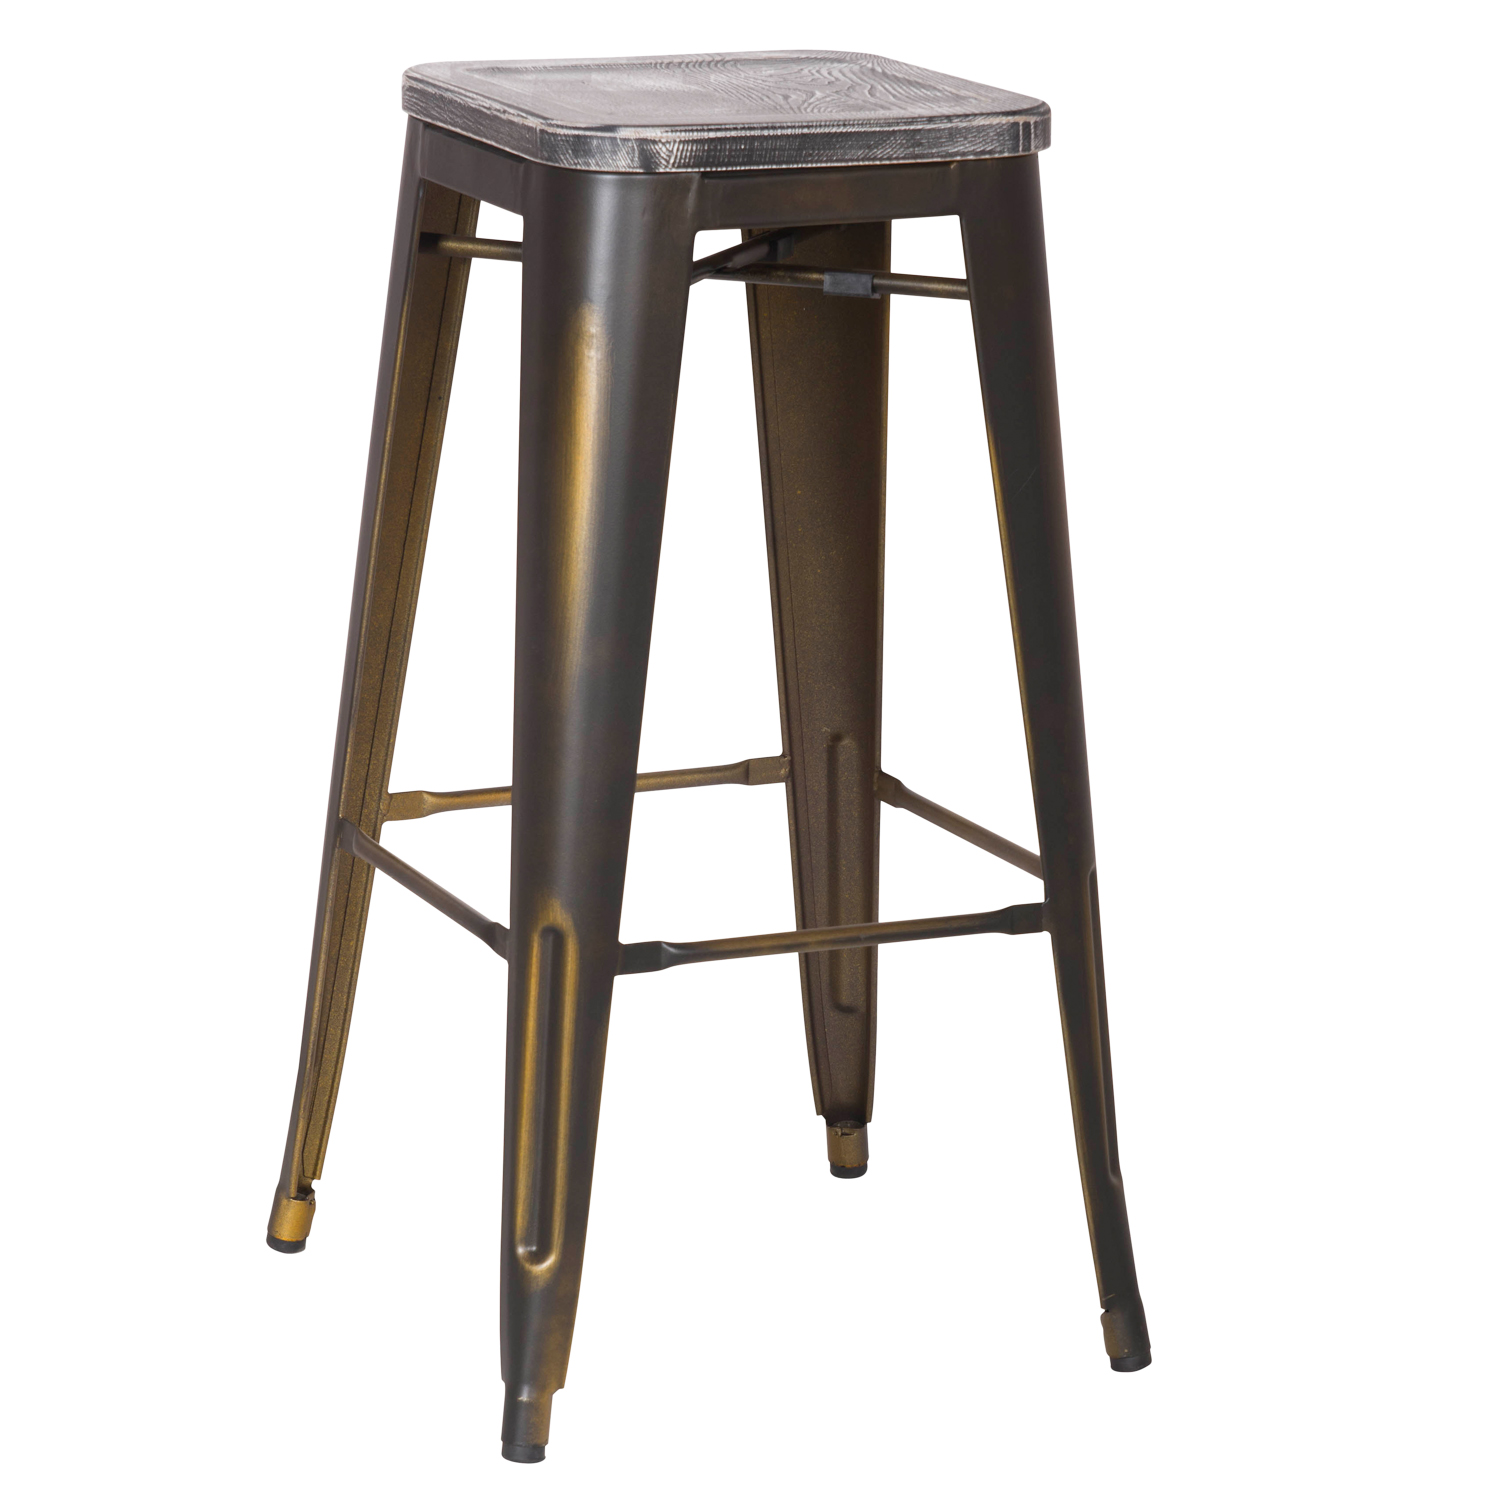 New Copper Metal Wood Counter Stool Kitchen Dining Bar: DecentHome Antique Copper Metal Bar Stools With Dark